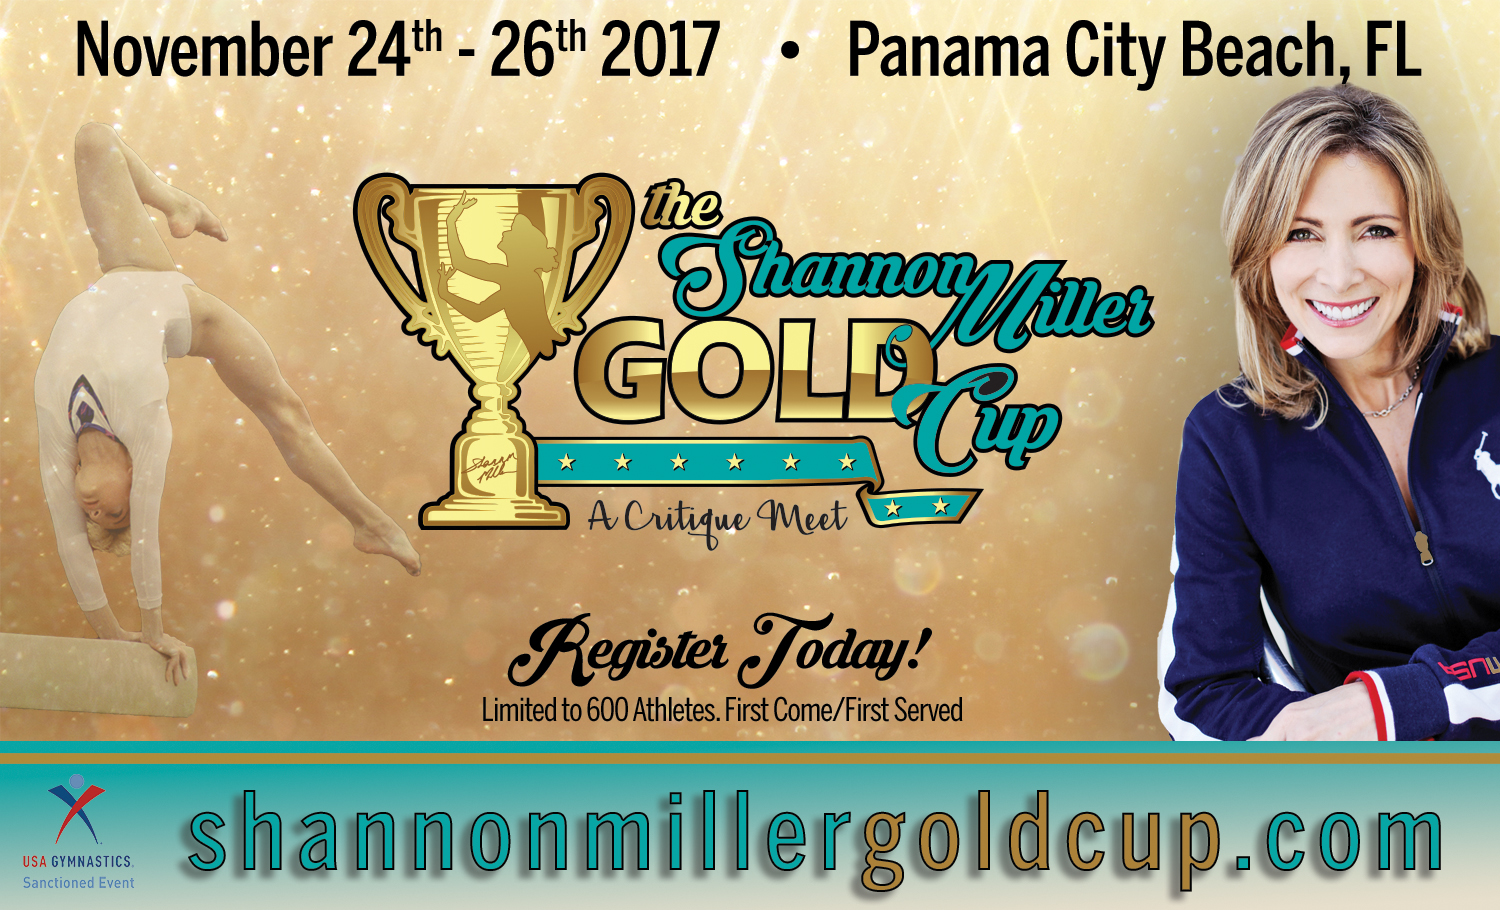 Shannon Miller Gold Cup